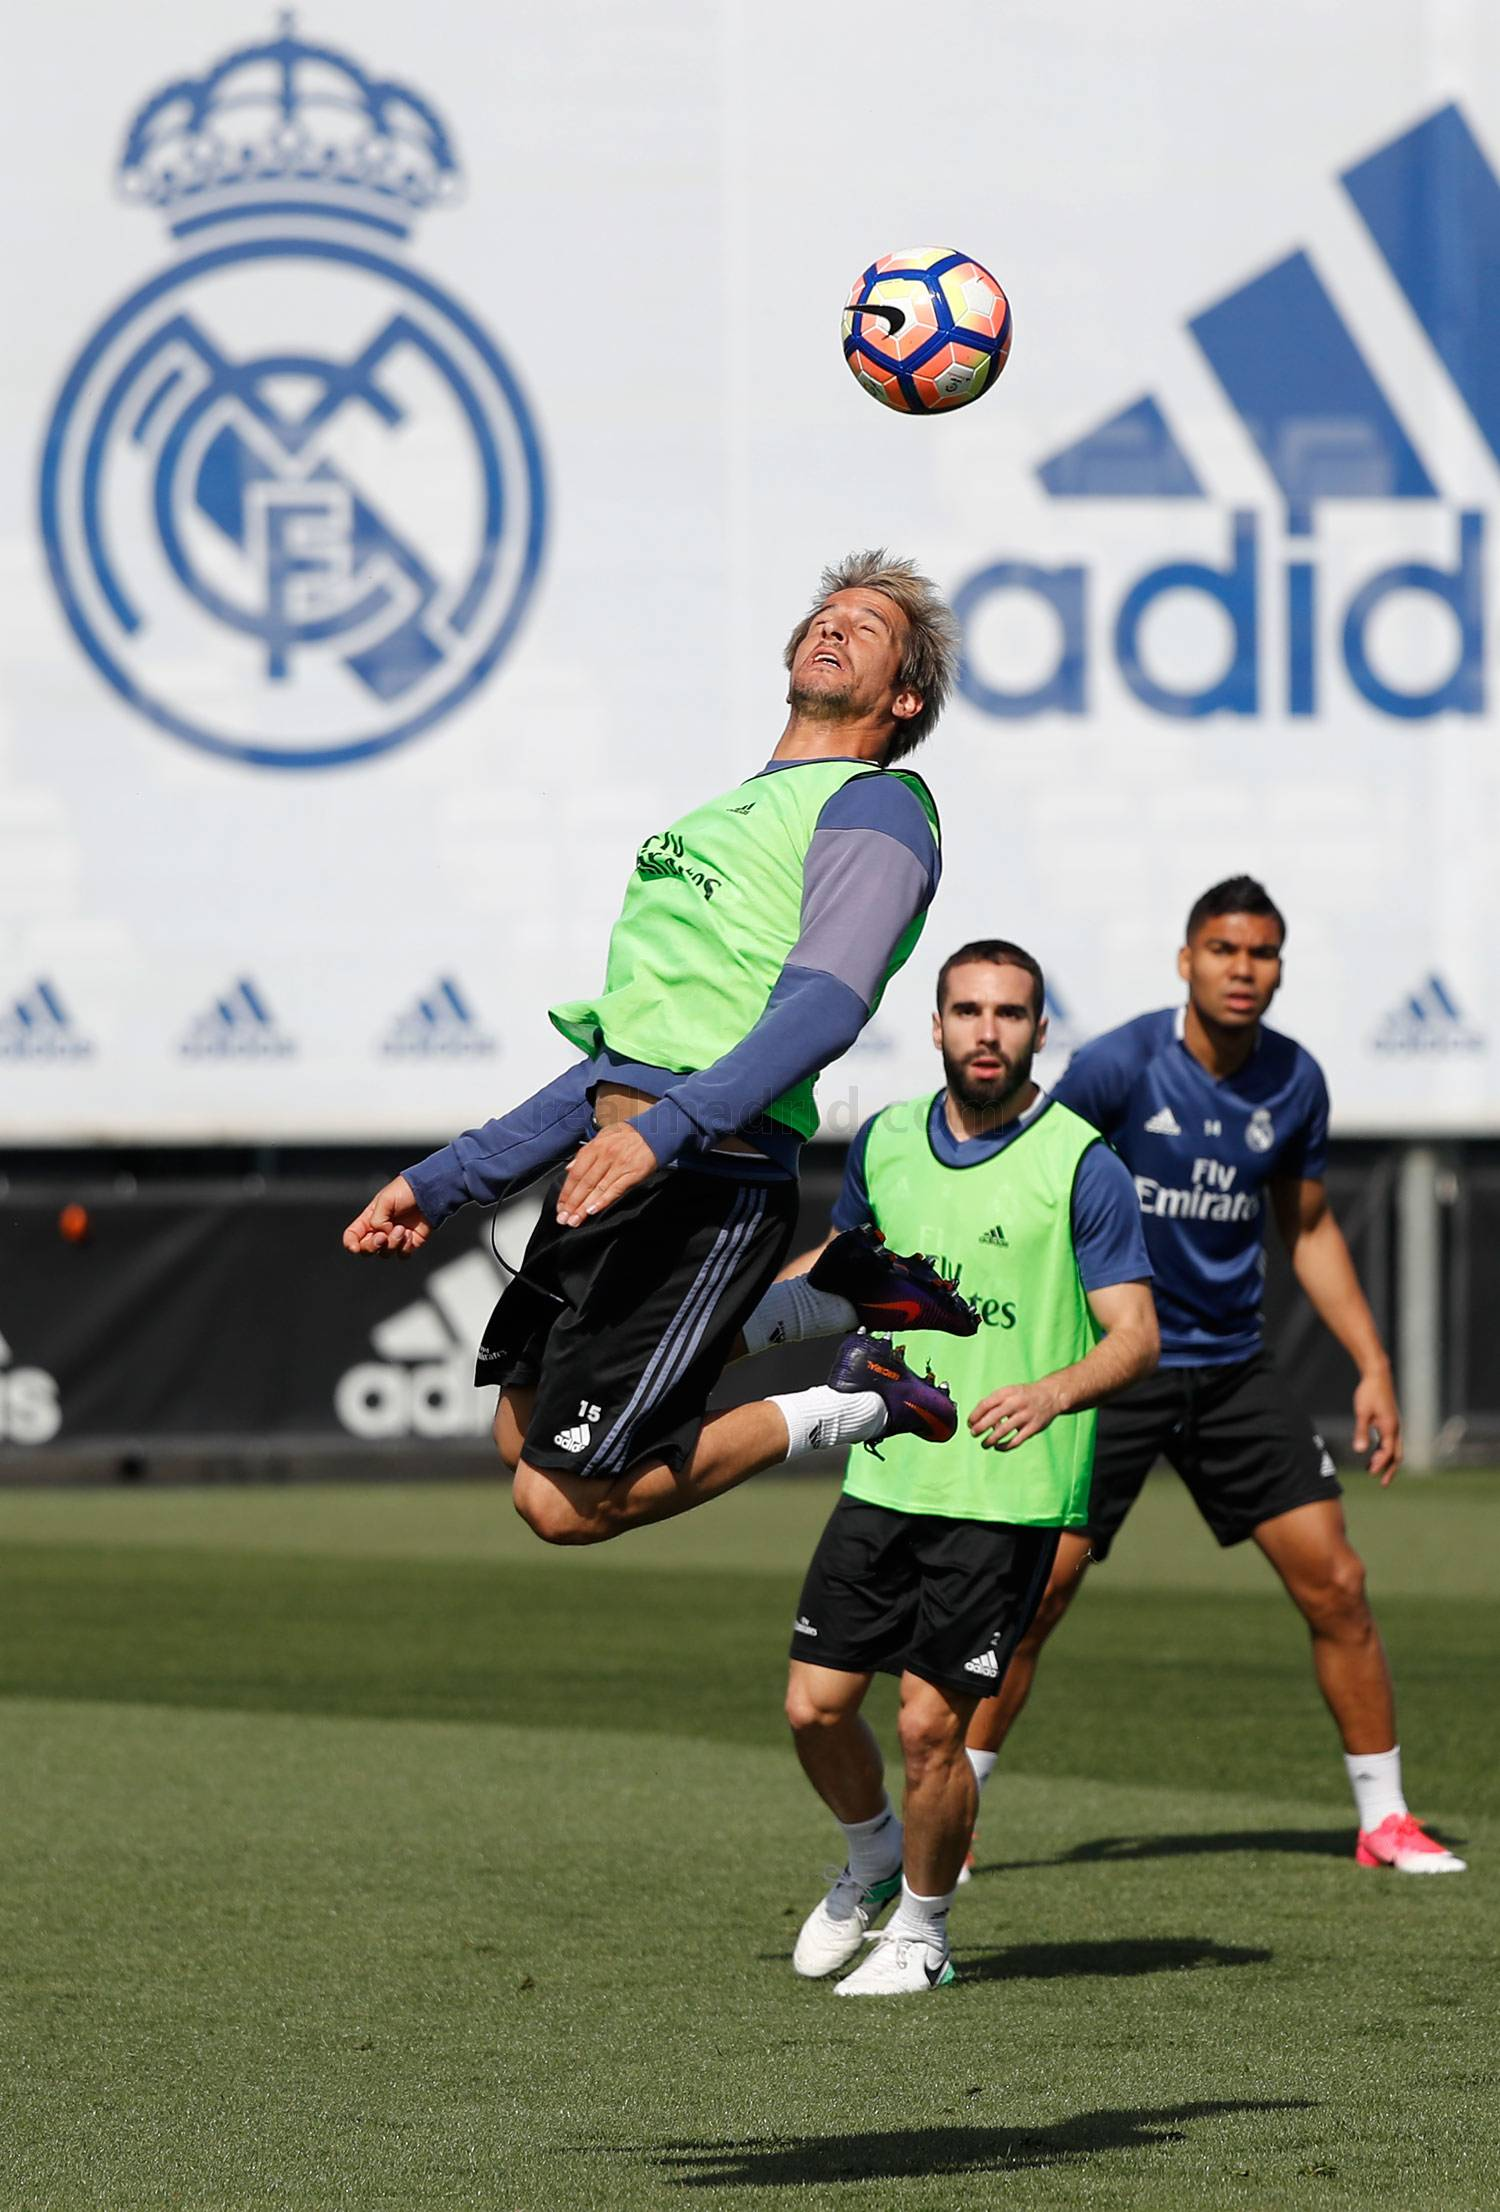 Real Madrid - Entrenamiento del Real Madrid - 14-04-2017